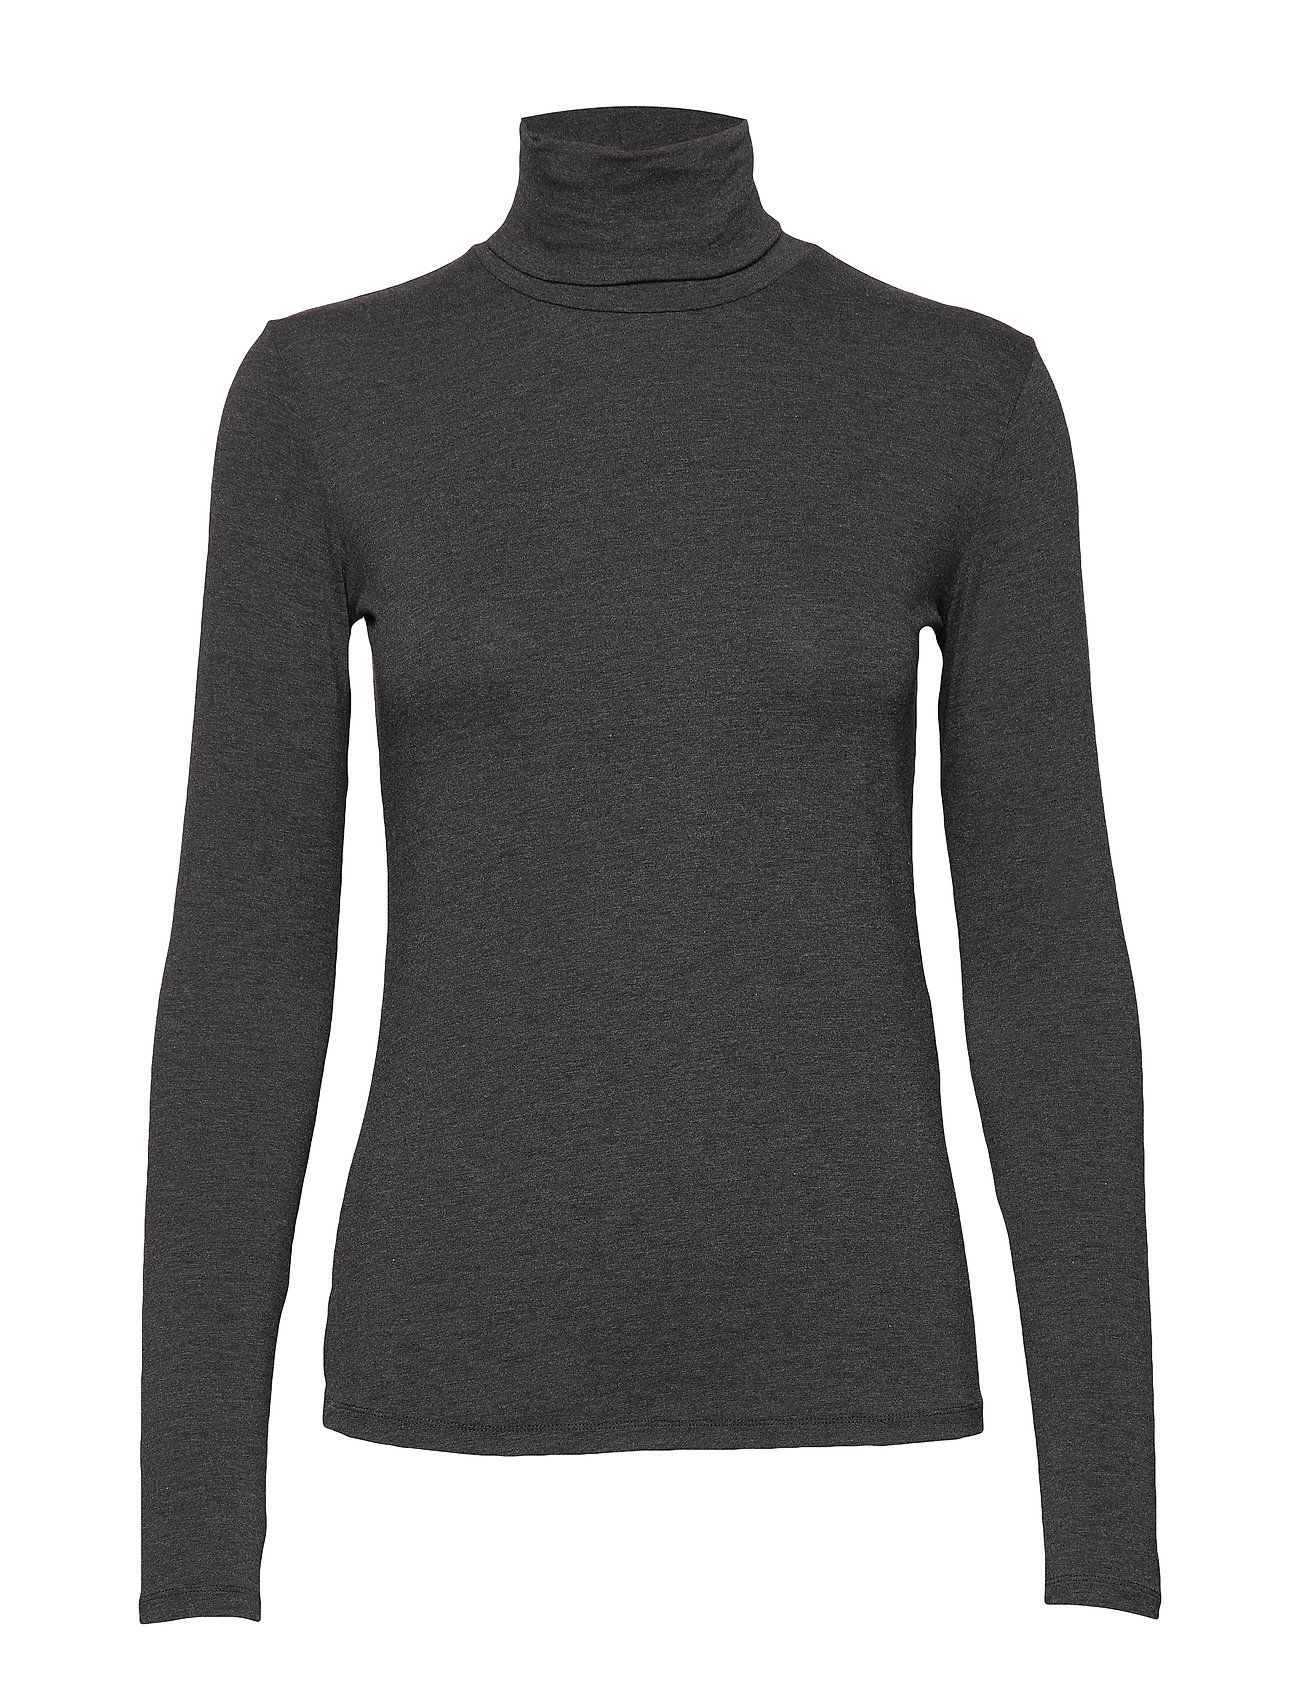 Weekend Max Mara MULTIG - DARK GREY